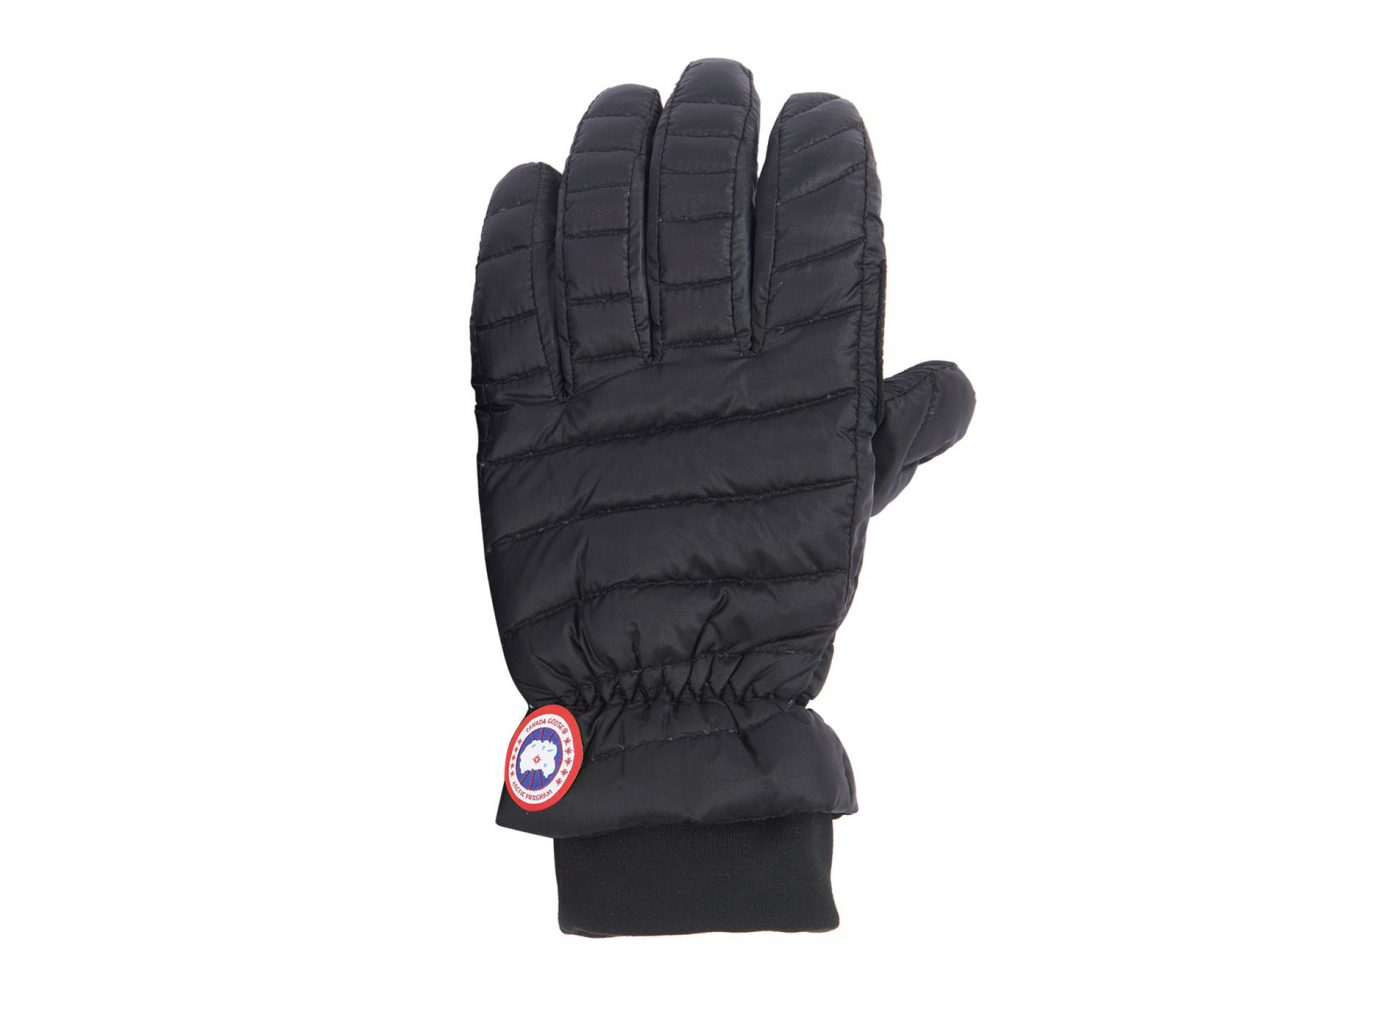 Canada Goose Lightweight Glove - Women's